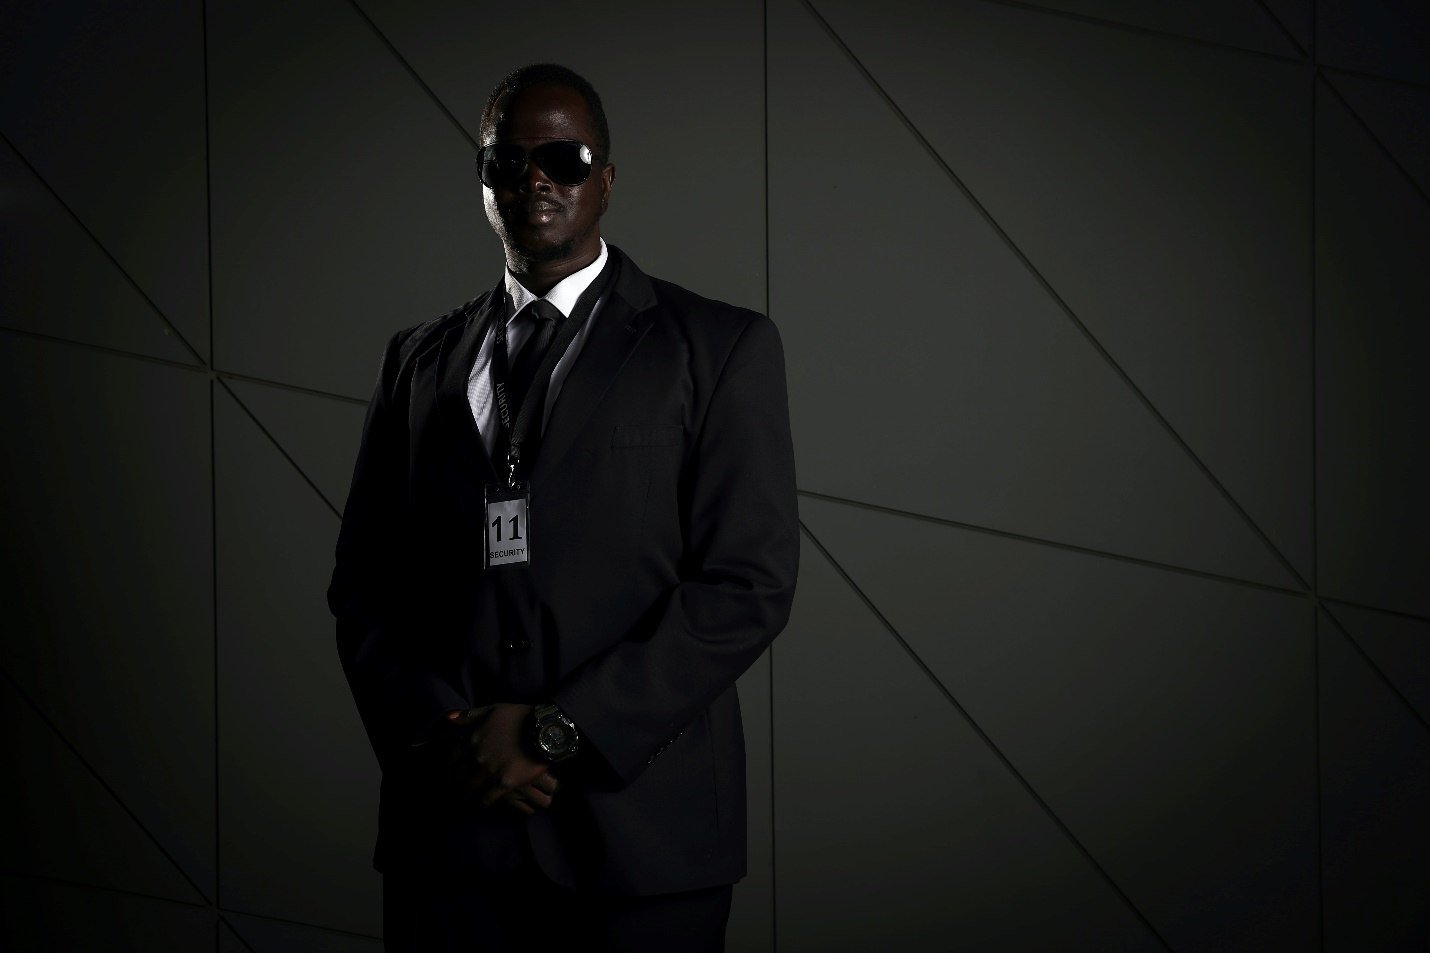 Security guard in a suit standing against a wall